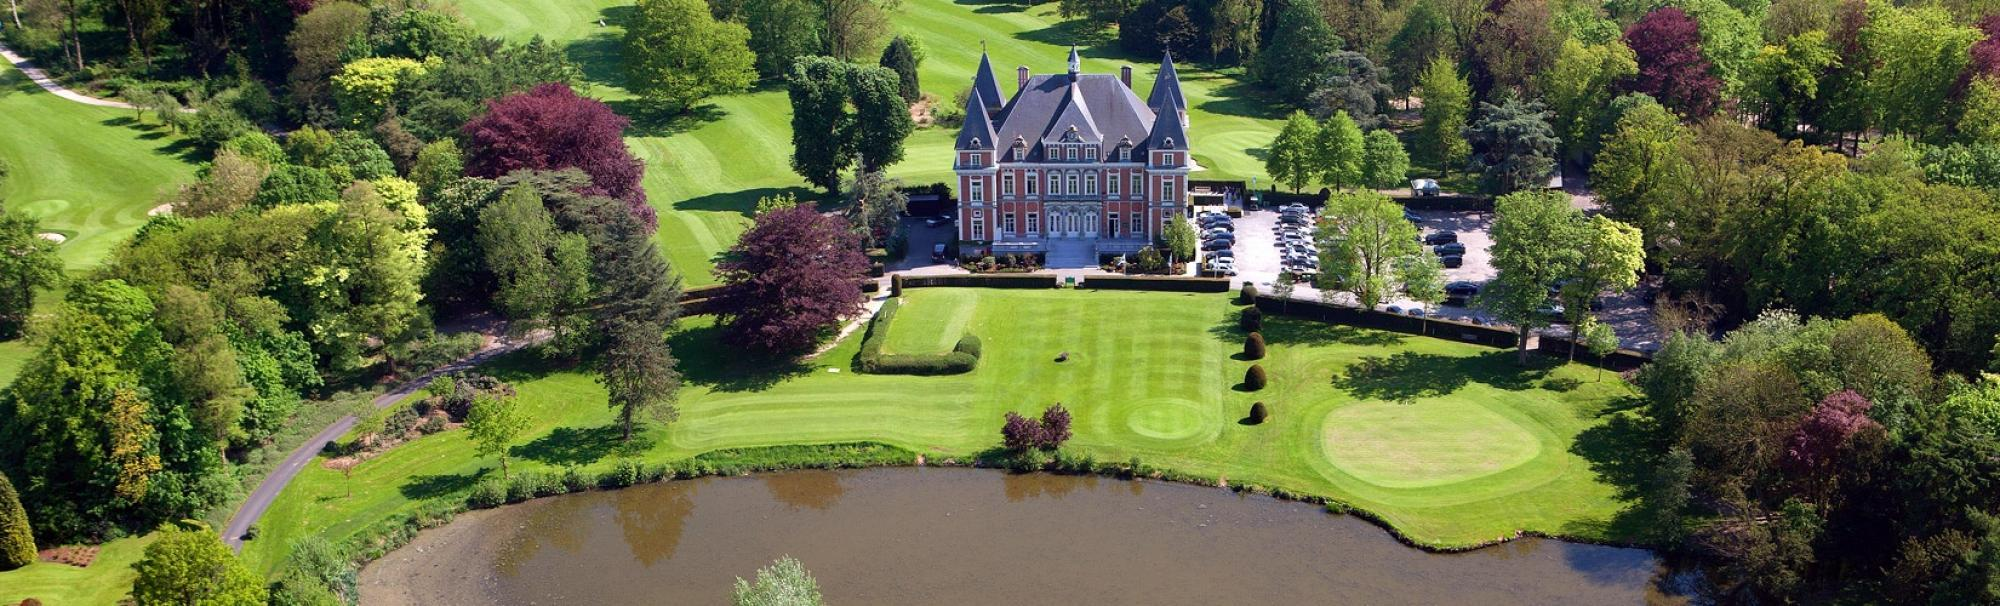 The Golf  Country Club Oudenaarde The Kasteel's scenic golf course in sensational Bruges.